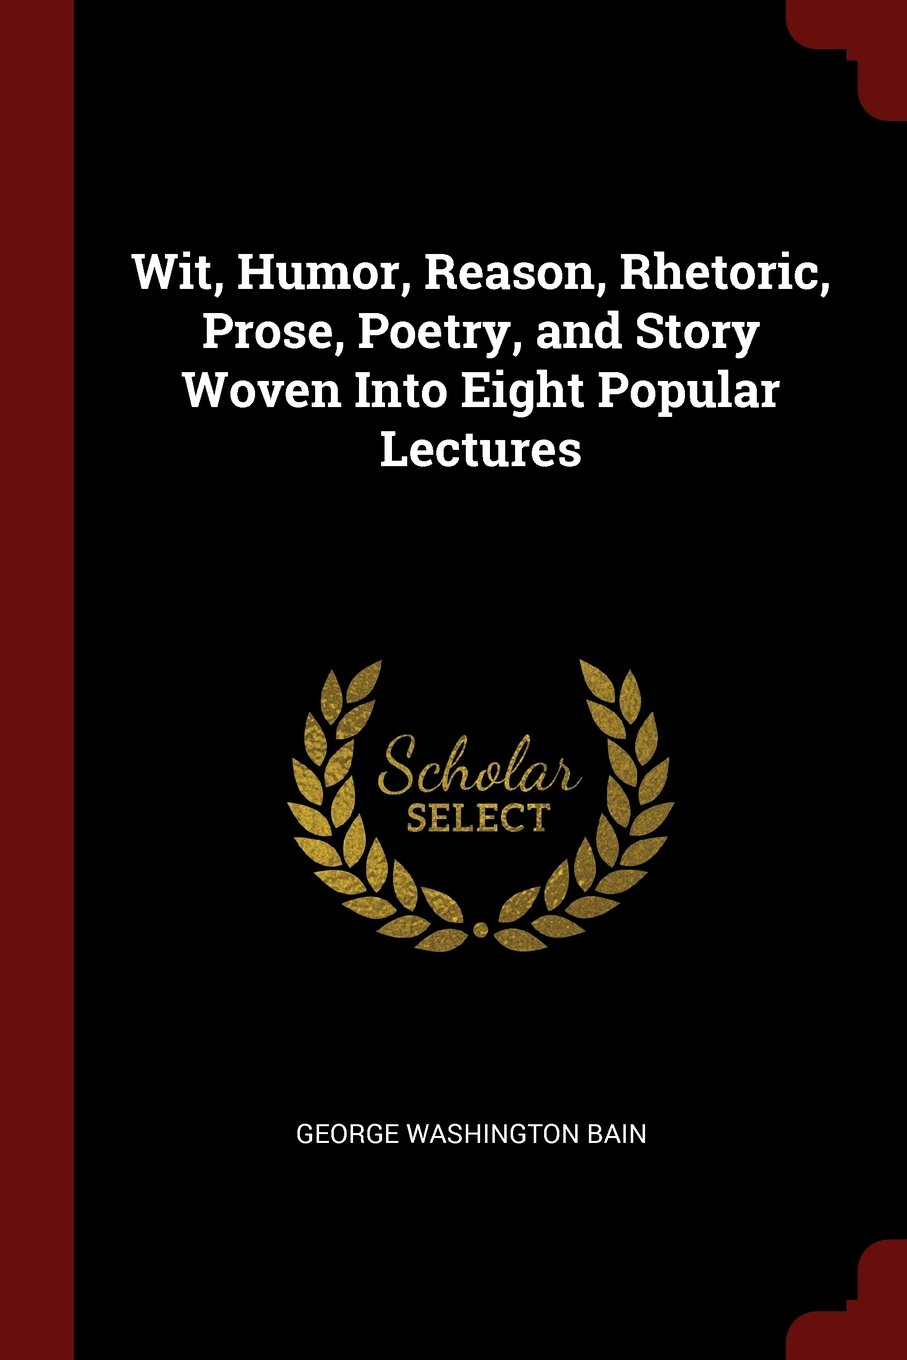 Download Wit, Humor, Reason, Rhetoric, Prose, Poetry, and Story Woven Into Eight Popular Lectures pdf